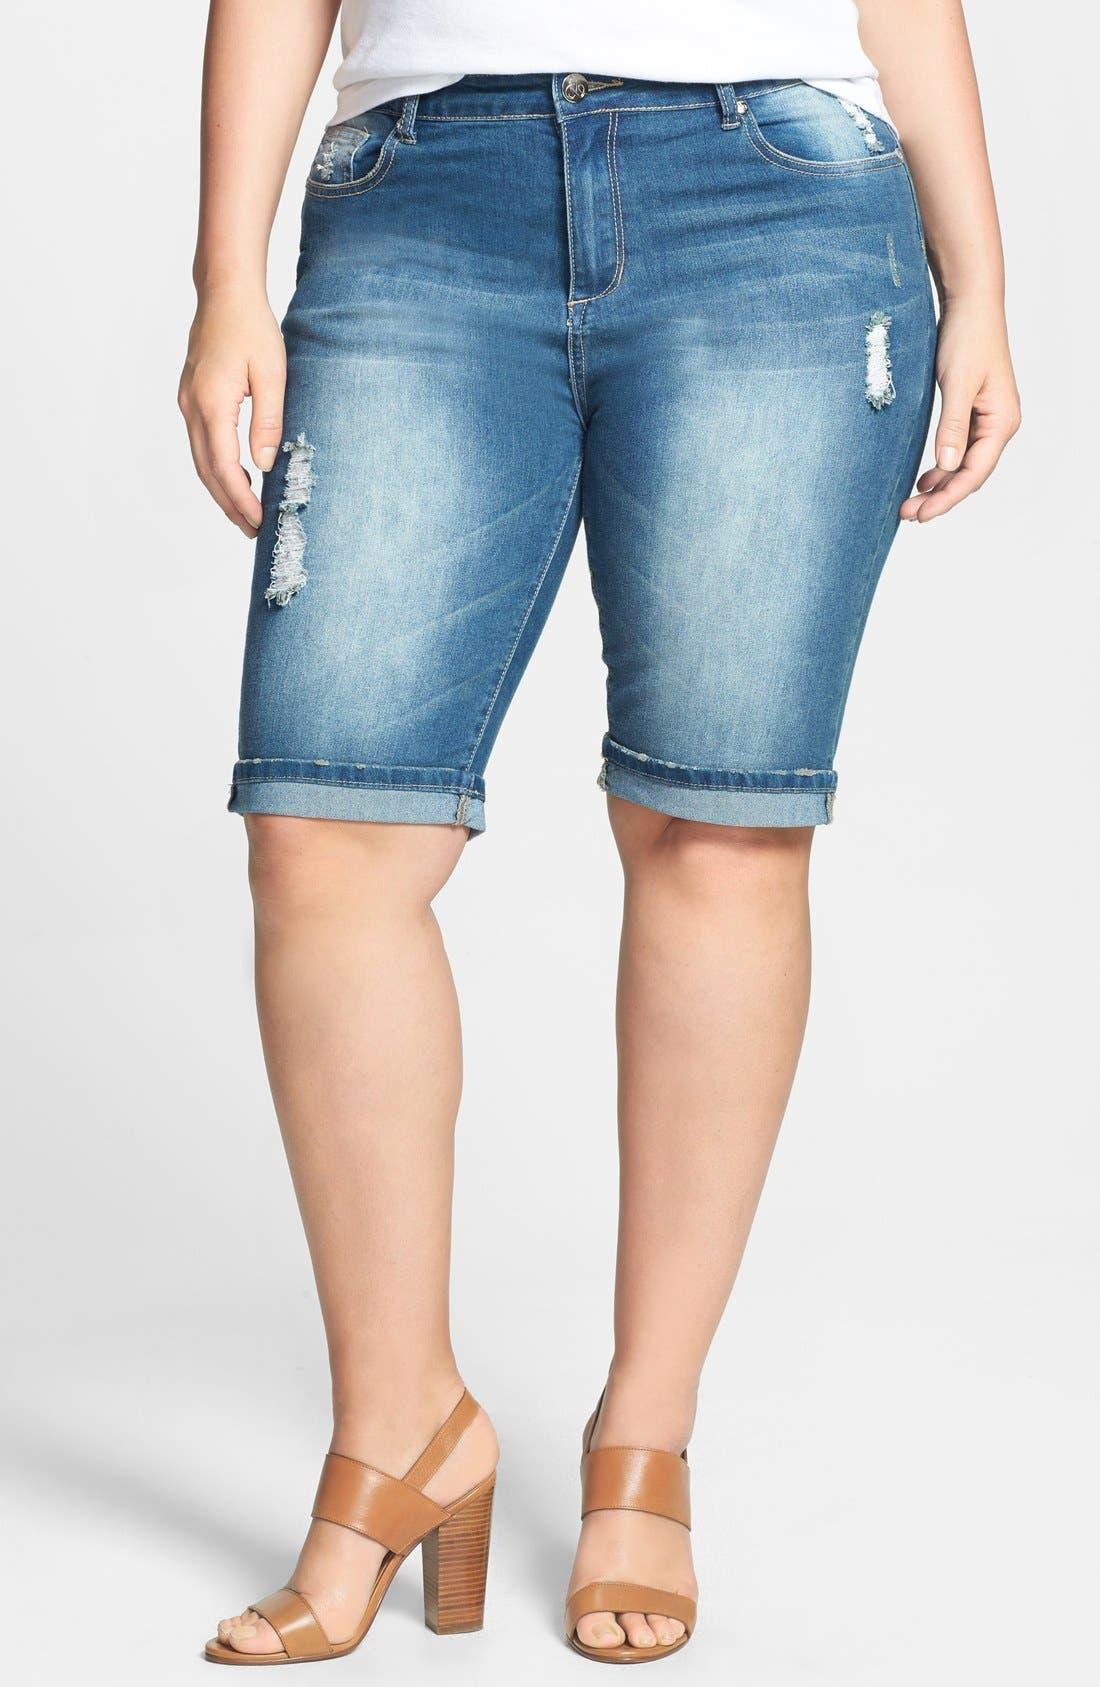 Alternate Image 1 Selected - City Chic Roll Cuff Distressed Denim Bermuda Shorts (Plus Size)